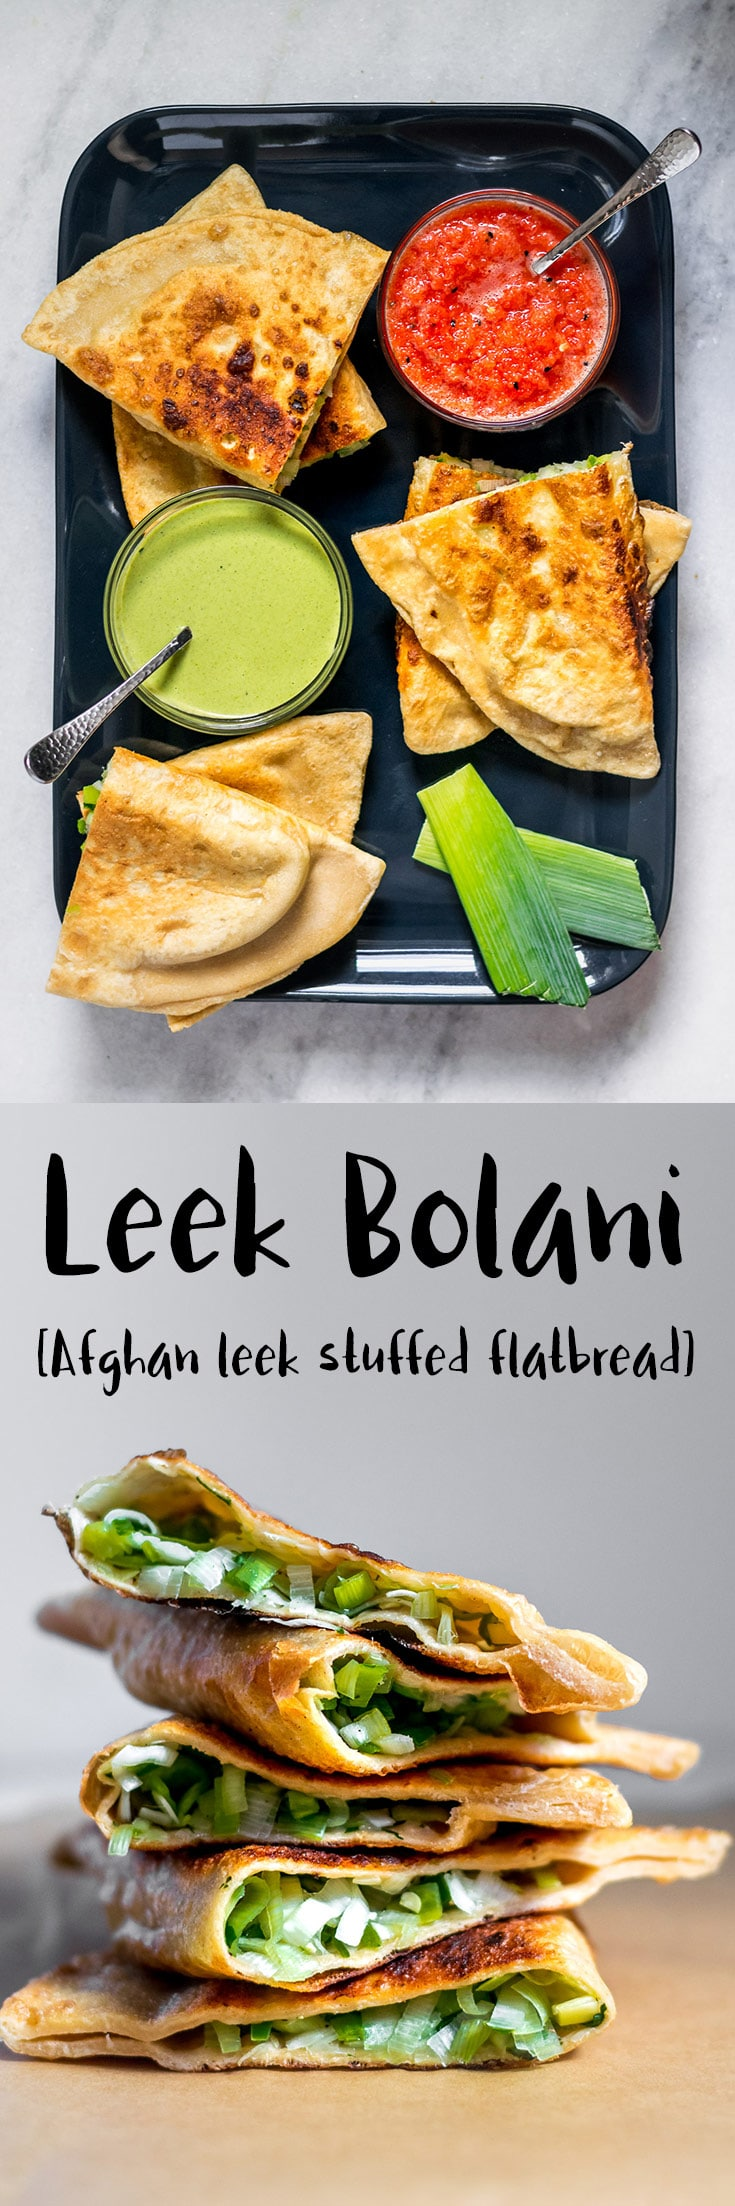 Leek Bolani are a delicious oniony and peppery stuffed flatbread from Afghanistan. They're easy to make and perfect to serve as a snack or appetizer alongside some chutney for dipping. | thecuriouschickpea.com #vegan #Afghanfood